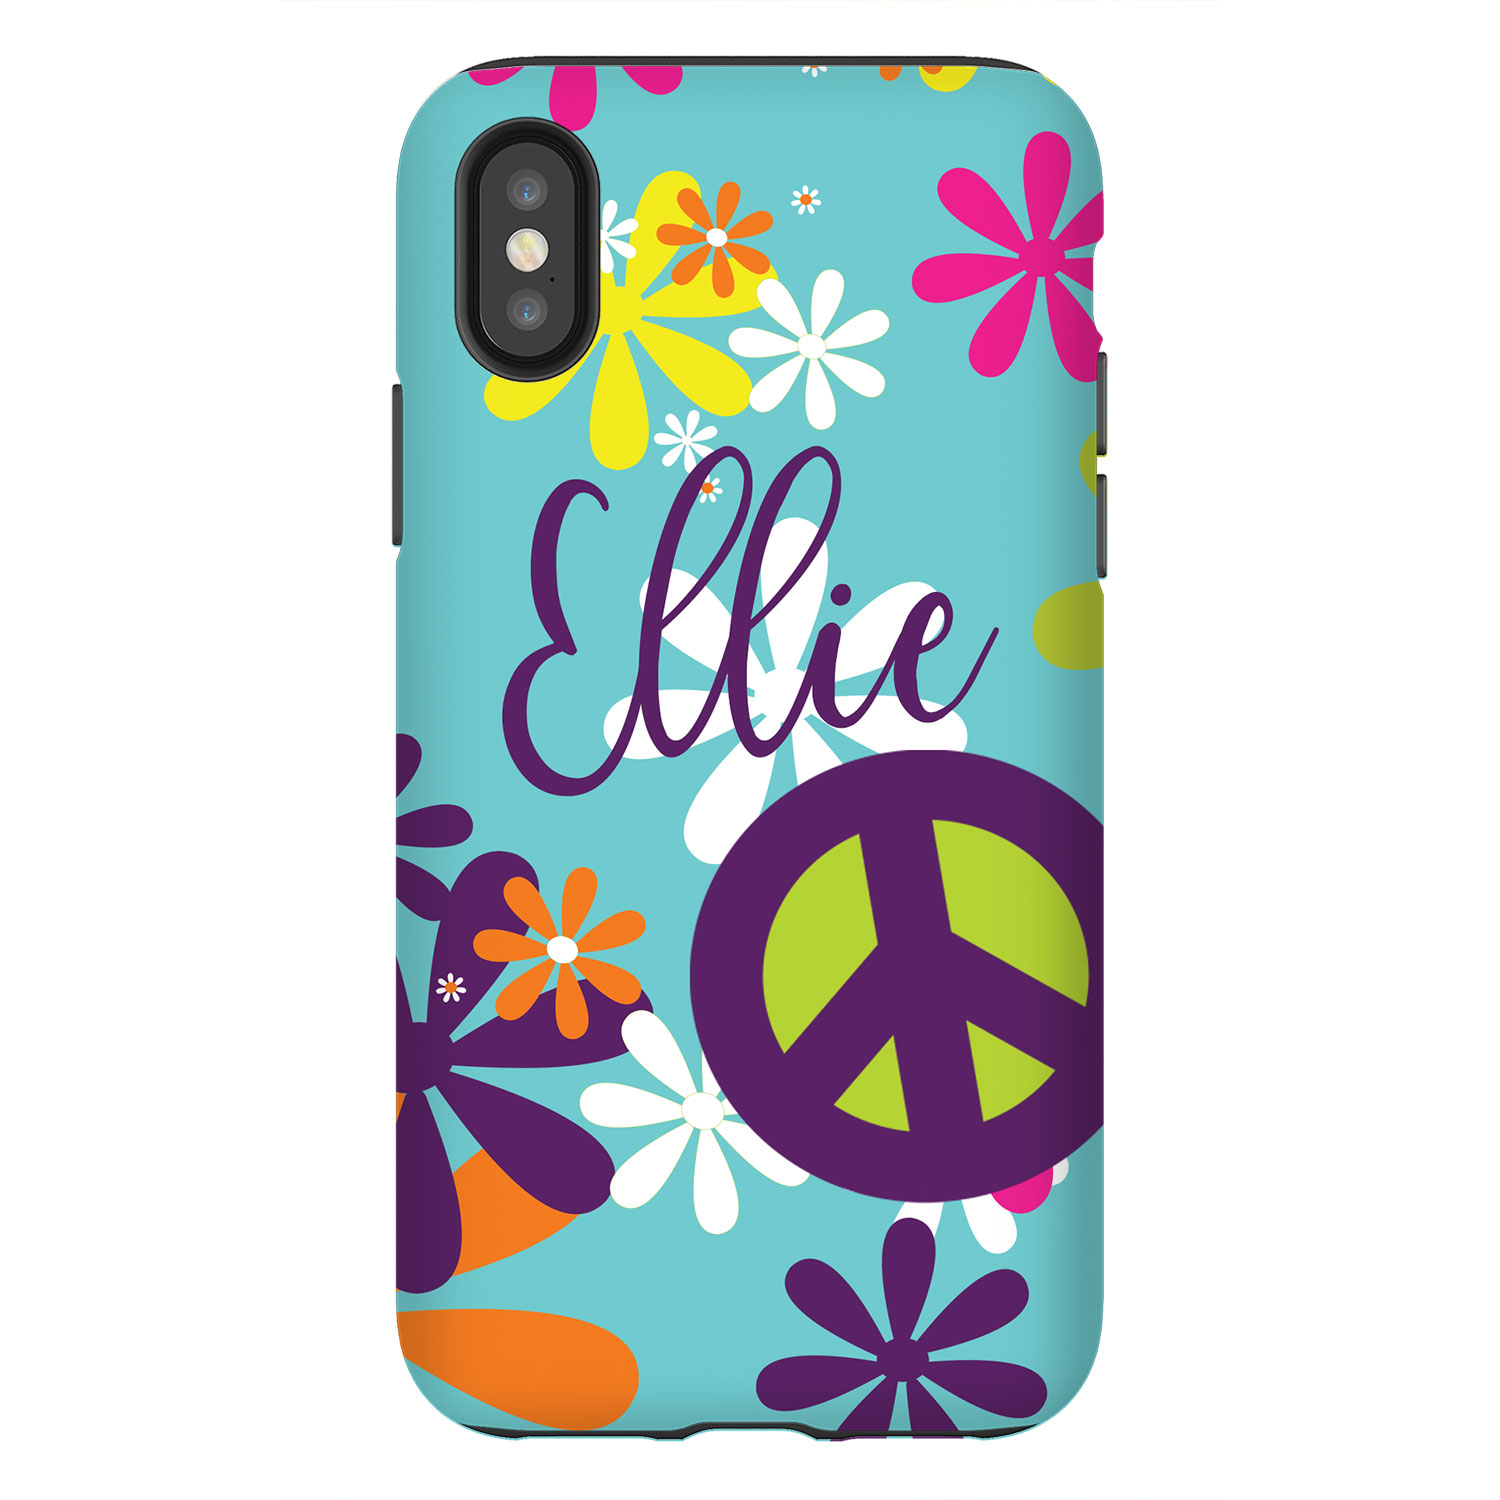 newest 595ec 2b8db Hippie Chick Personalized Phone Case - iPhone, Samsung Case